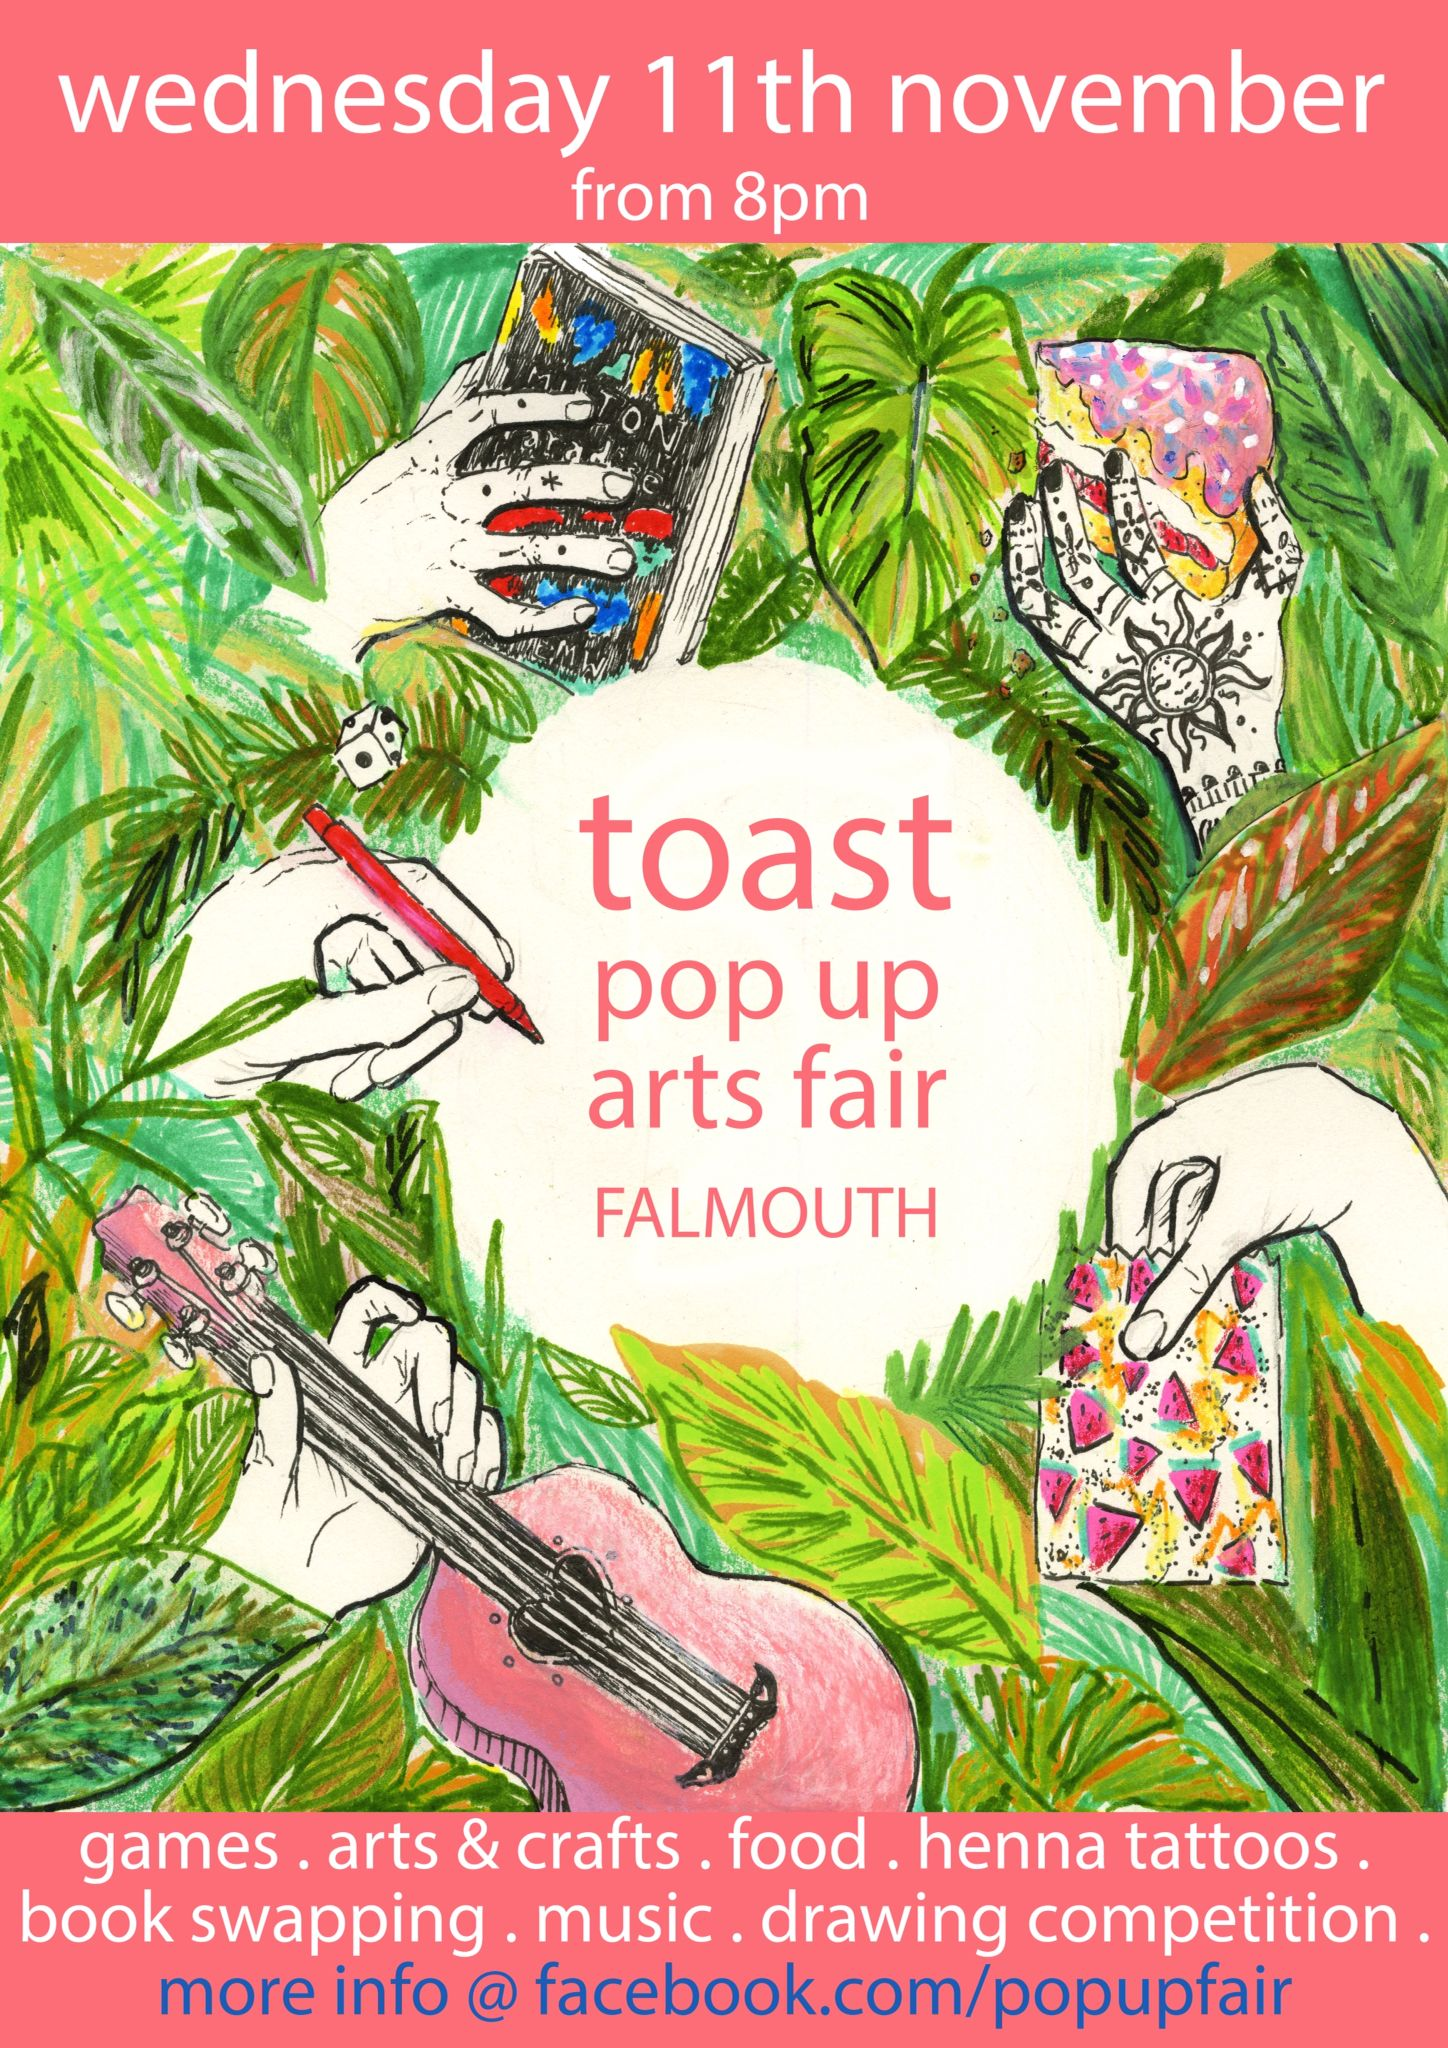 Poster for Toast's pop up arts fair in promarker, neocolor pastel and fineliner pen